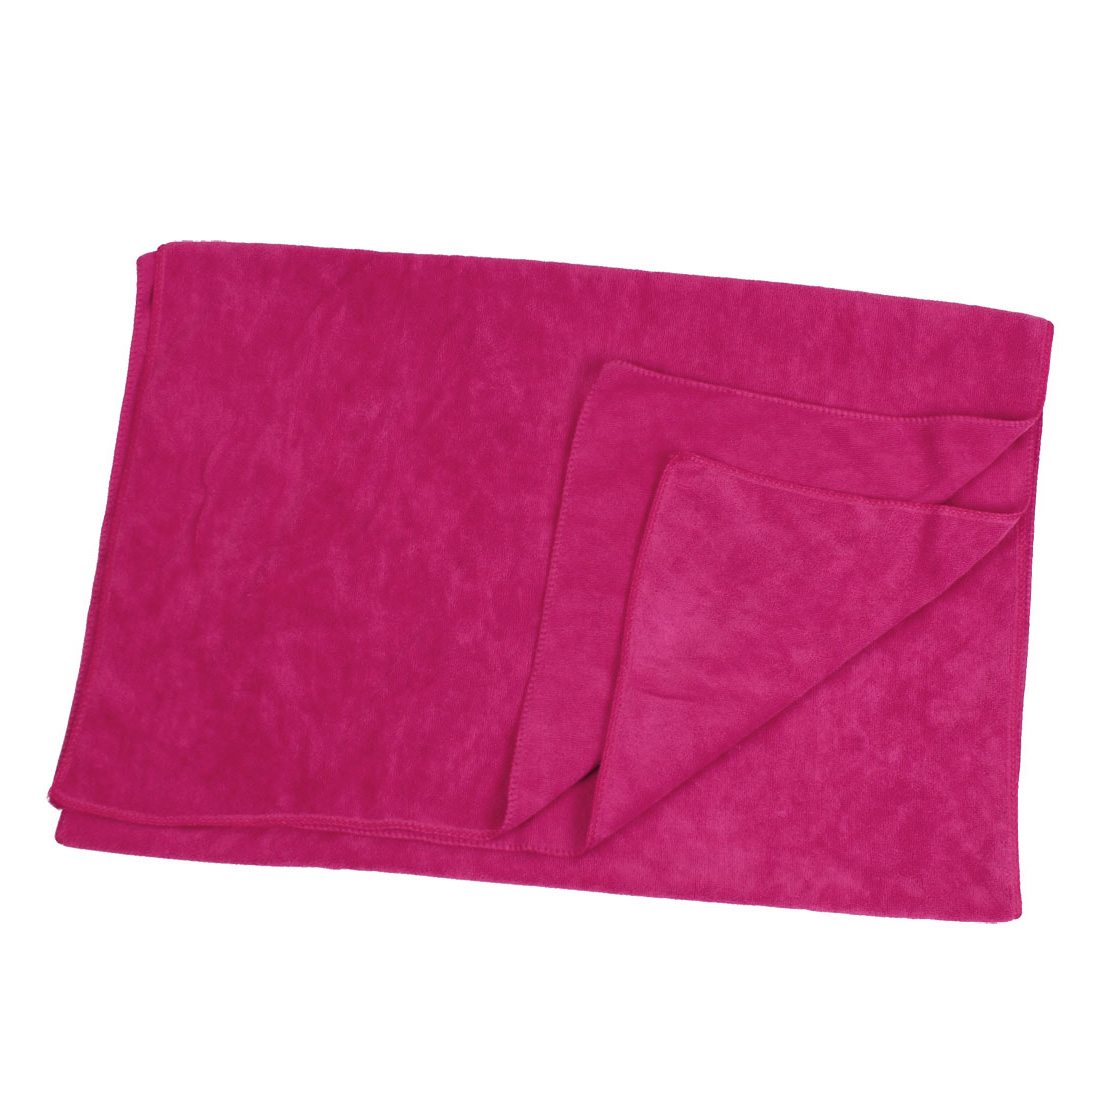 Fuchsia Rectangle Microfiber Cleaning Cloth Towel Cleaner 160cm x 65cm for Car Vehicle